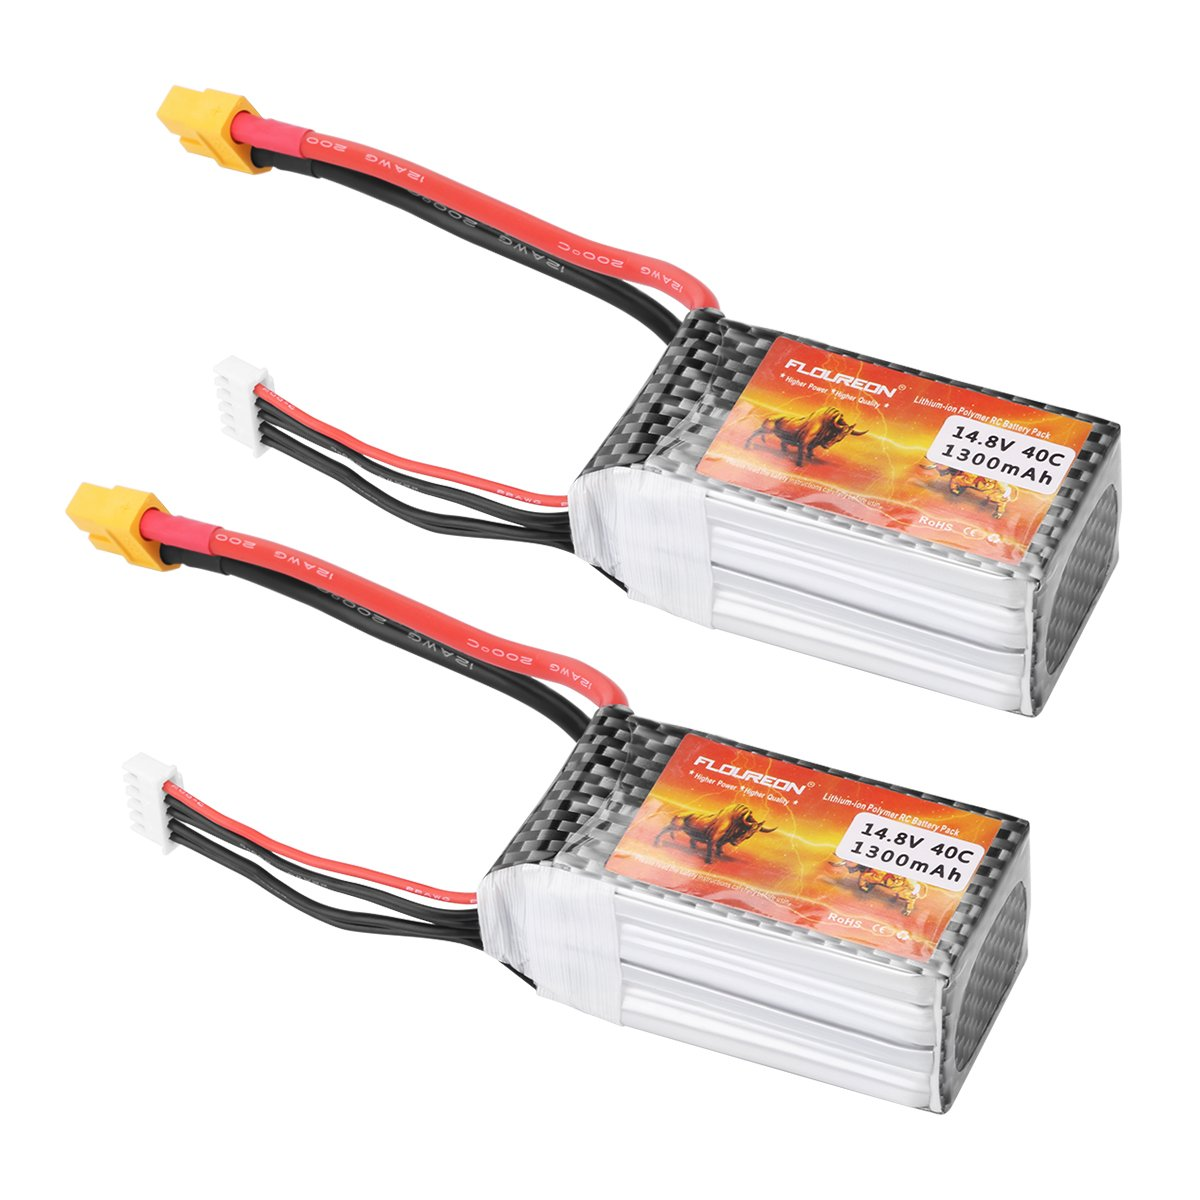 FLOUREON Lipo 4S 40C 14.8V 1300mAh XT60 Plug Rechargeable RC Battery for RC Car Truck Boat RC FPV UAV Drones Airplane Helicopter DIY Hobby and More (2pack)